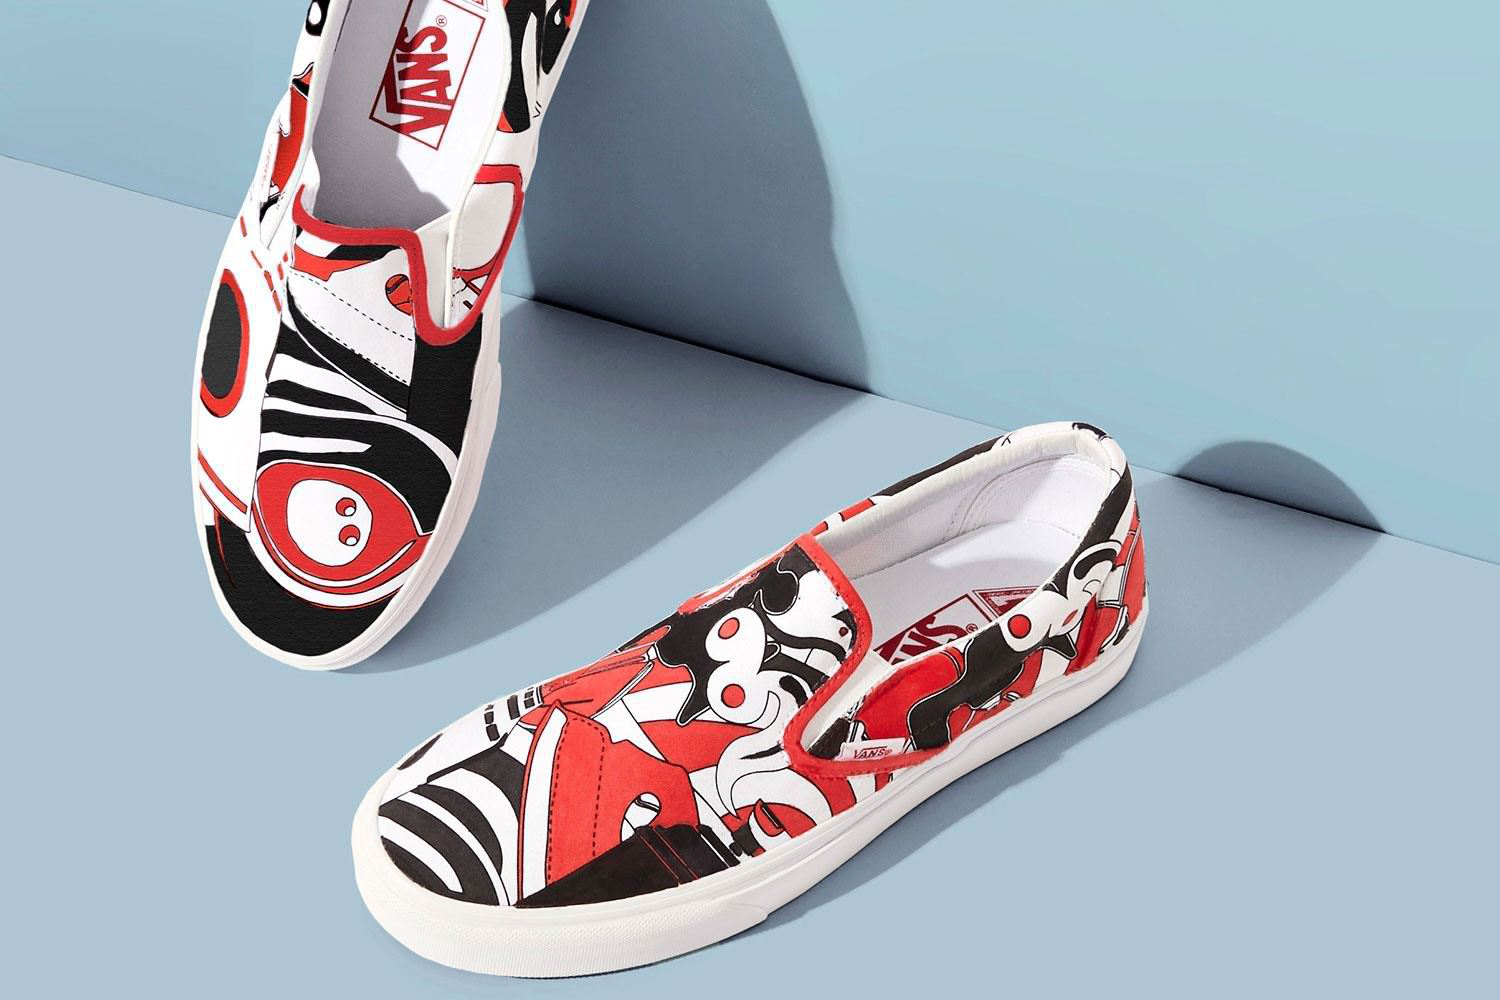 marc jacobs and vans slip on capsule collection - the chicflaneuse.com 8